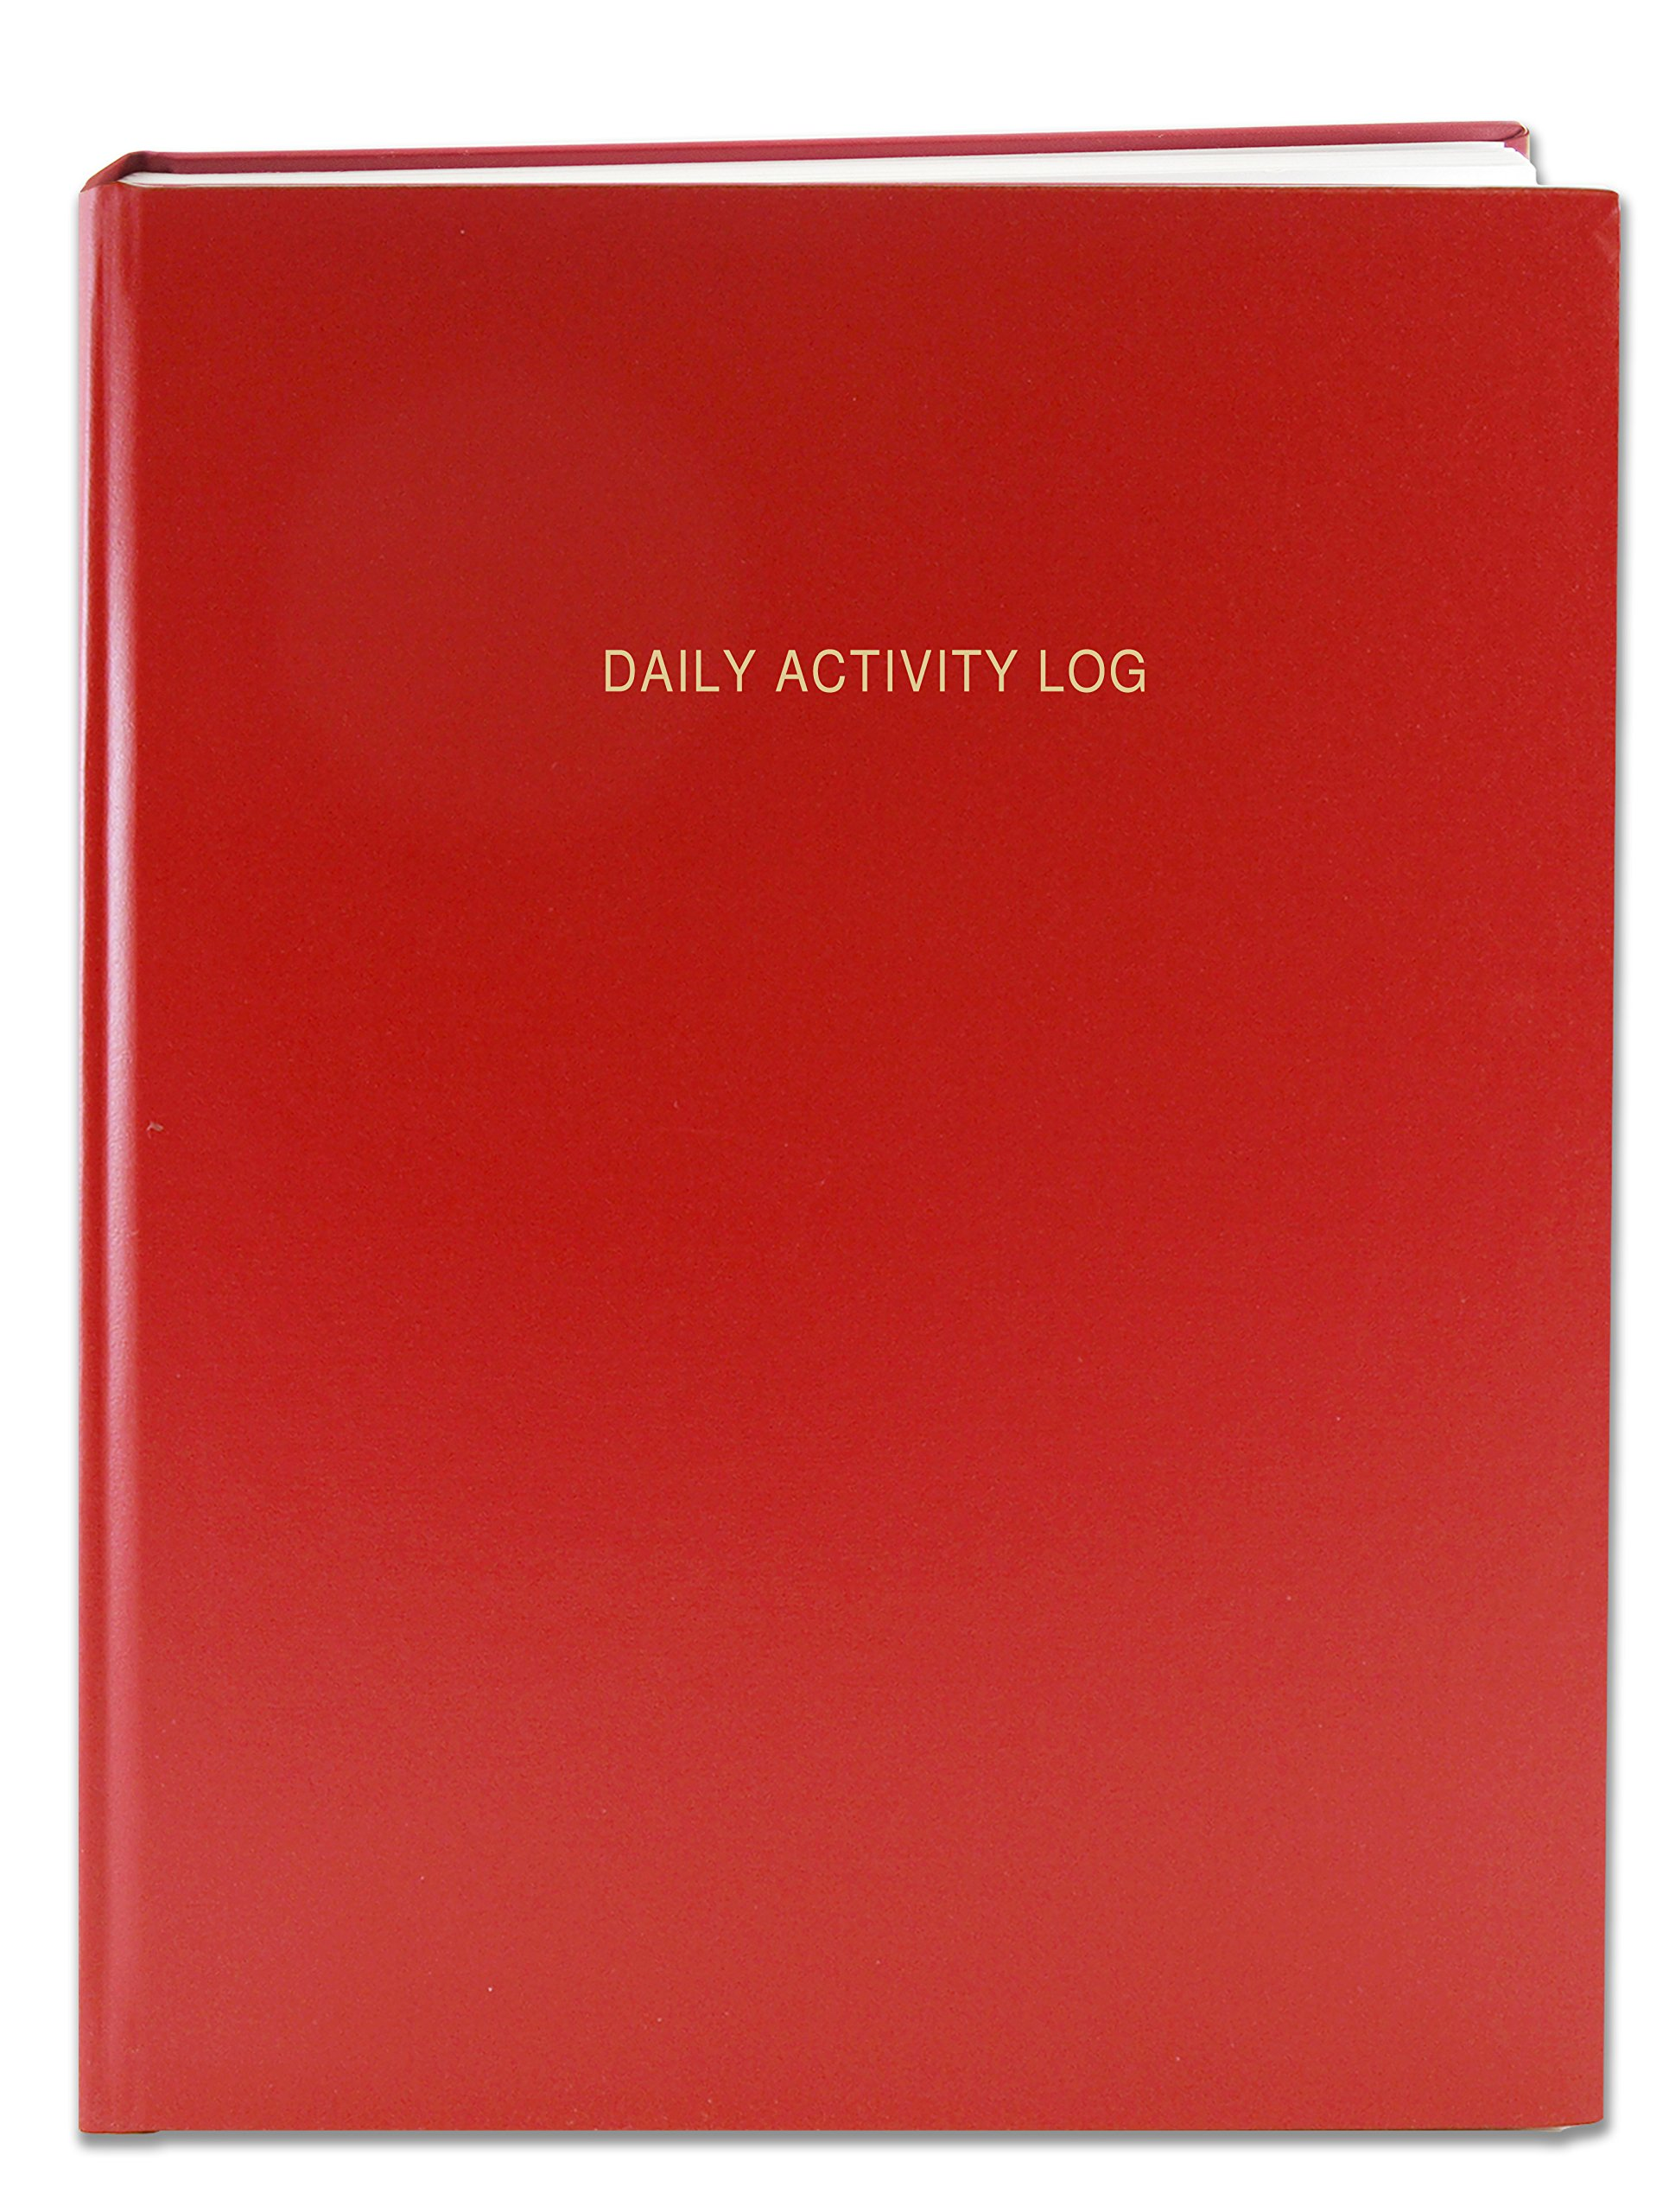 BookFactory Daily Activity Log Book / 365 Day Log Book (384 Pages - 8 7/8'' x 11 1/4'') / 365 Page Diary, Red Cover, Smyth Sewn Hardbound (LOG-384-DAY-A-LRRT32)